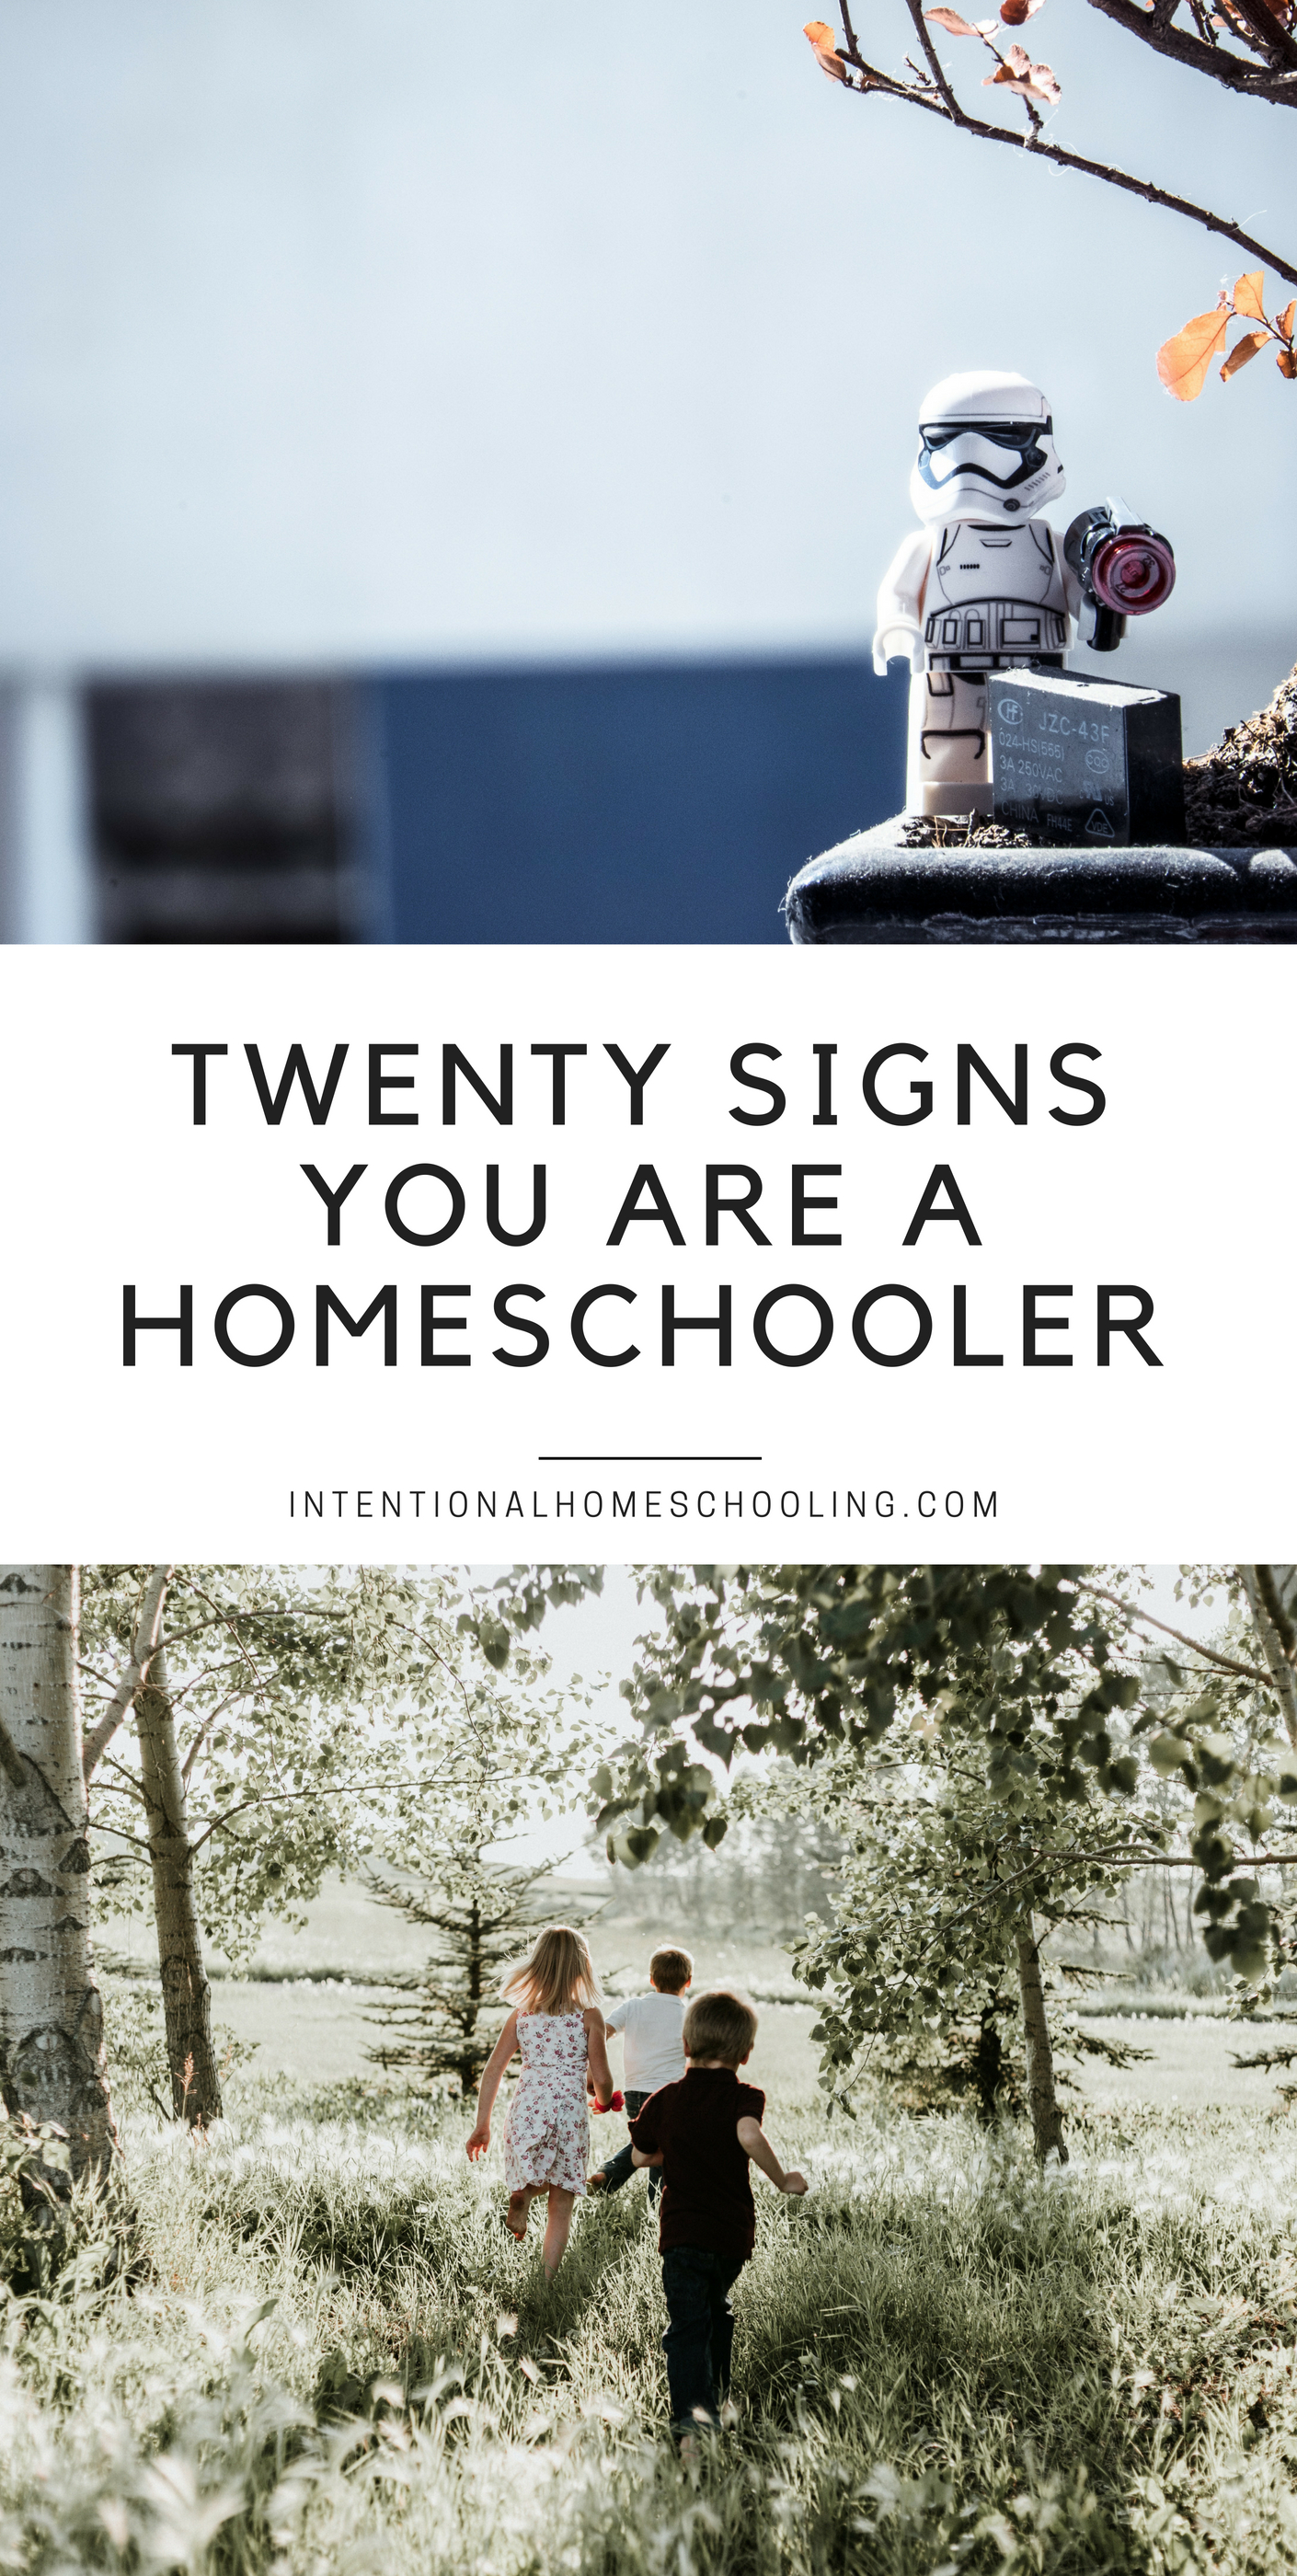 Twenty Signs You are a Homeschooler